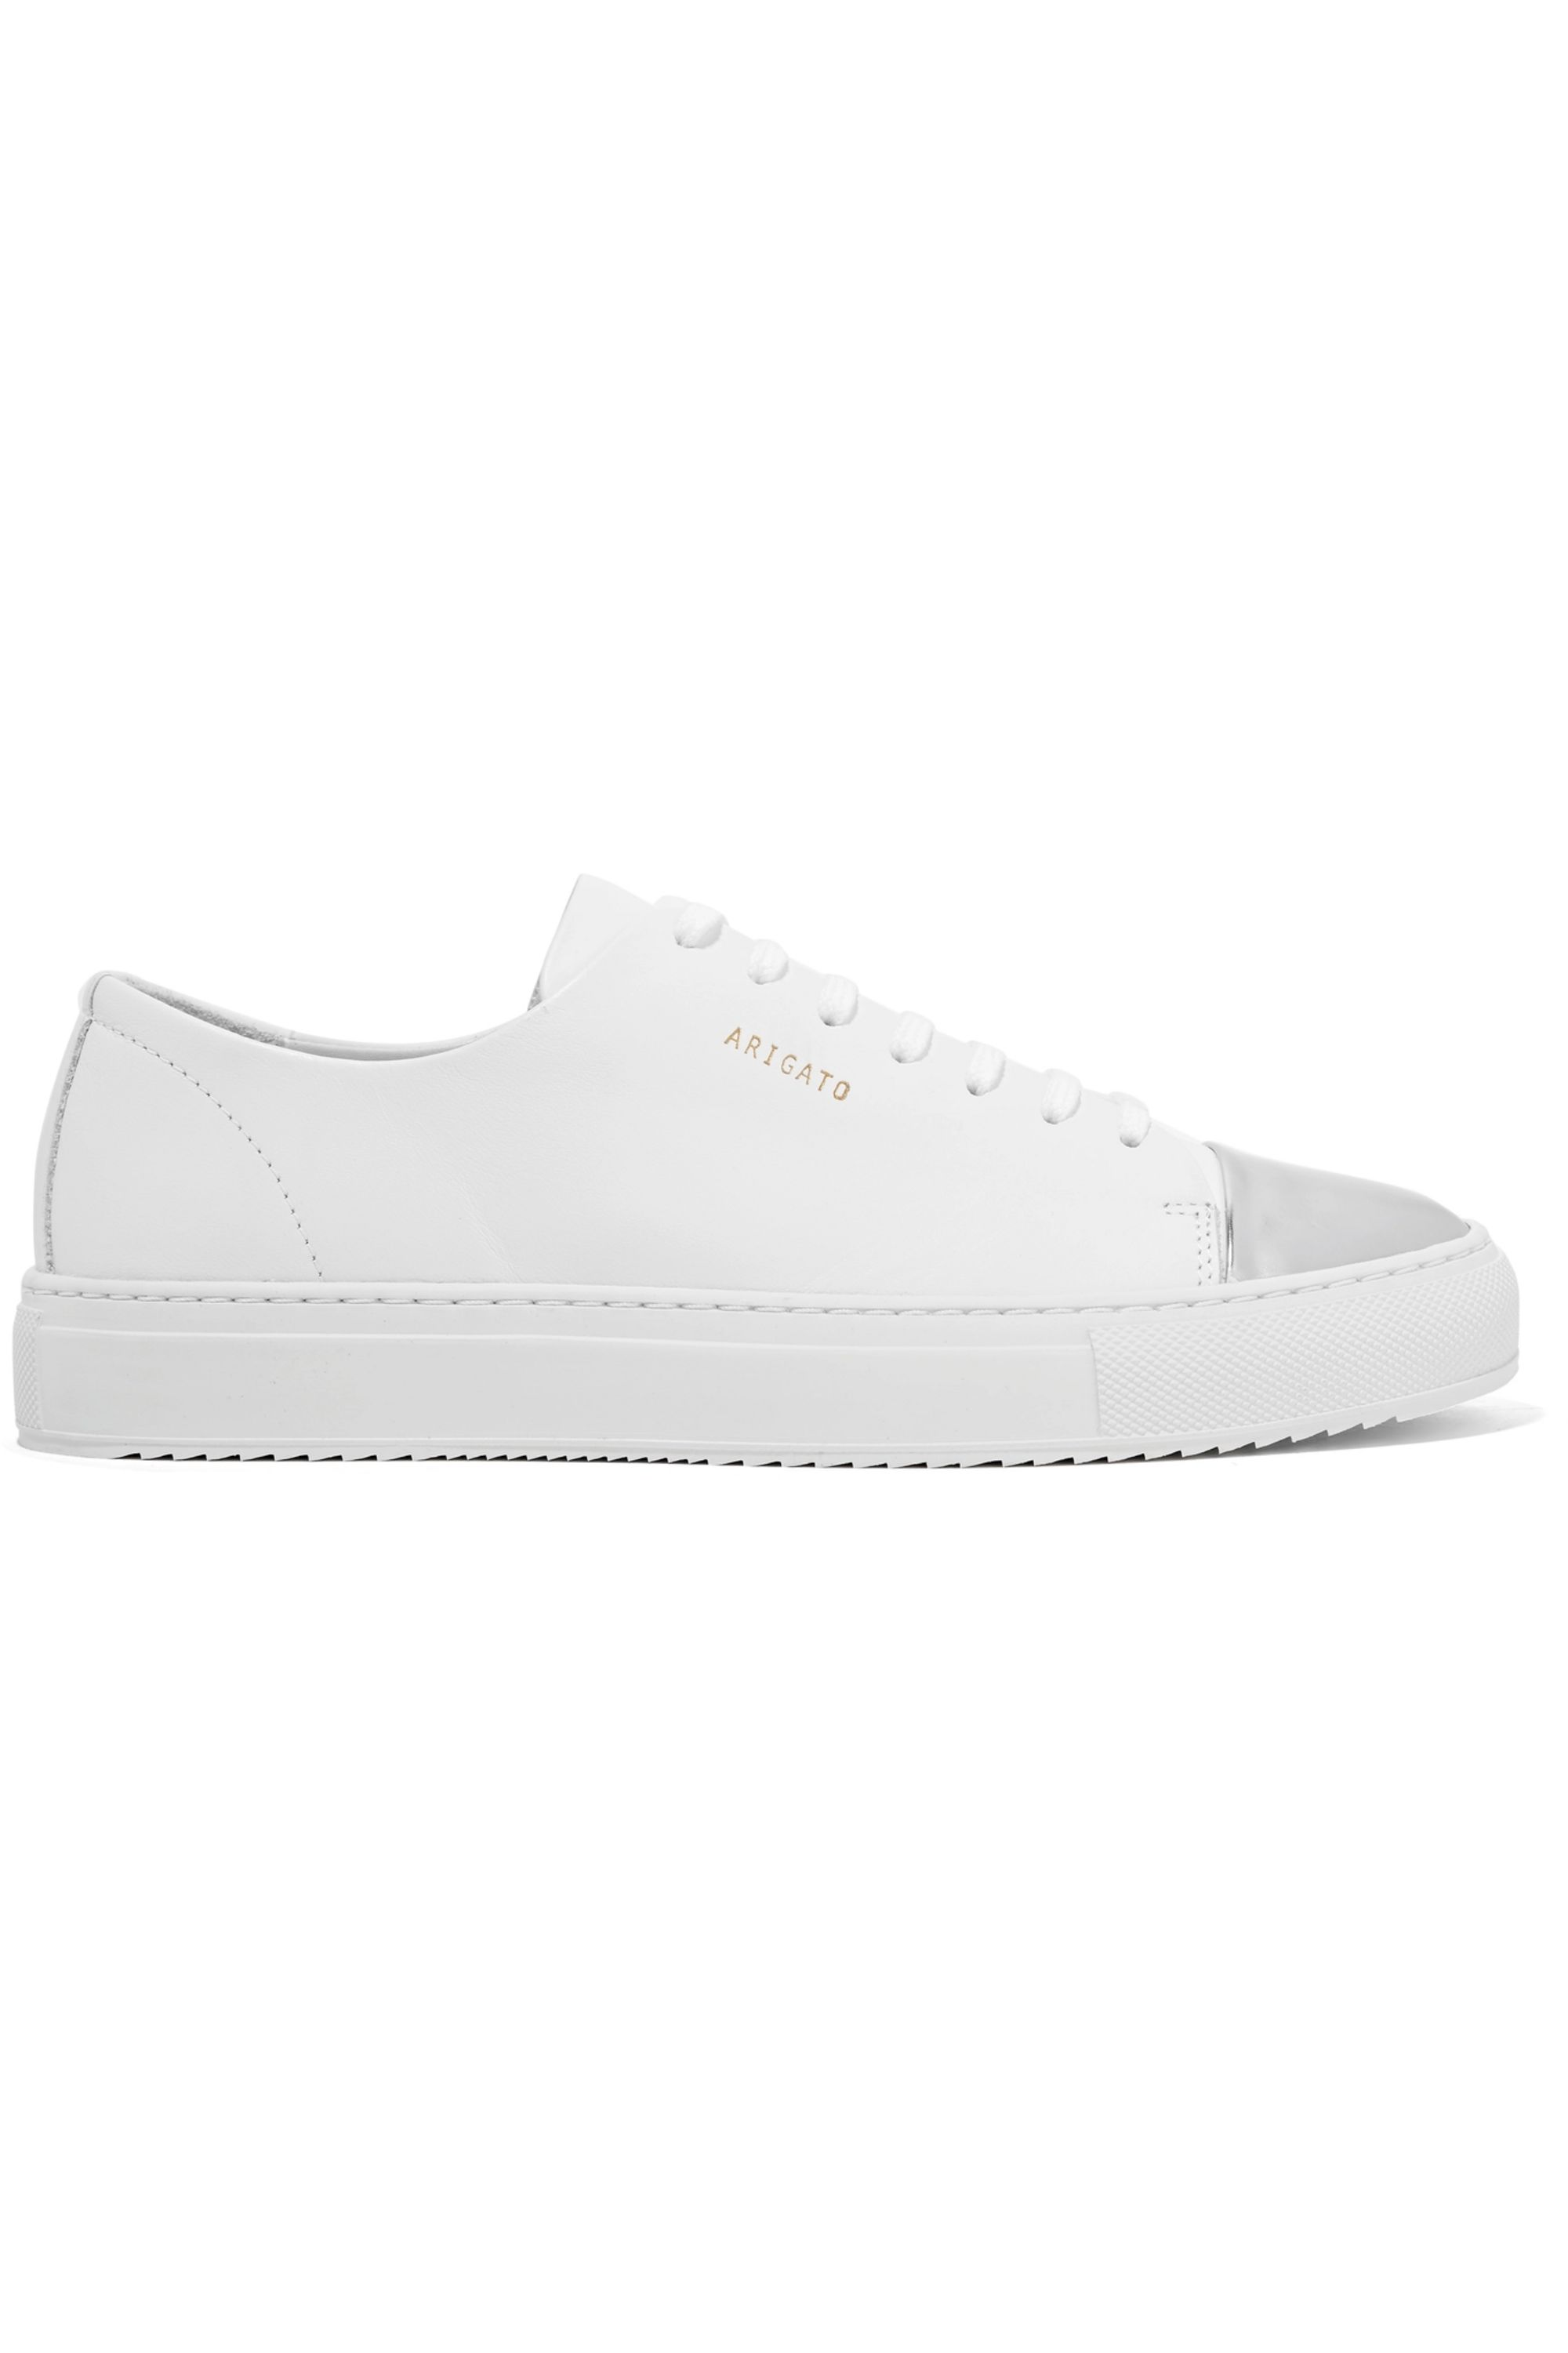 Axel Arigato Metallic-trimmed leather sneakers